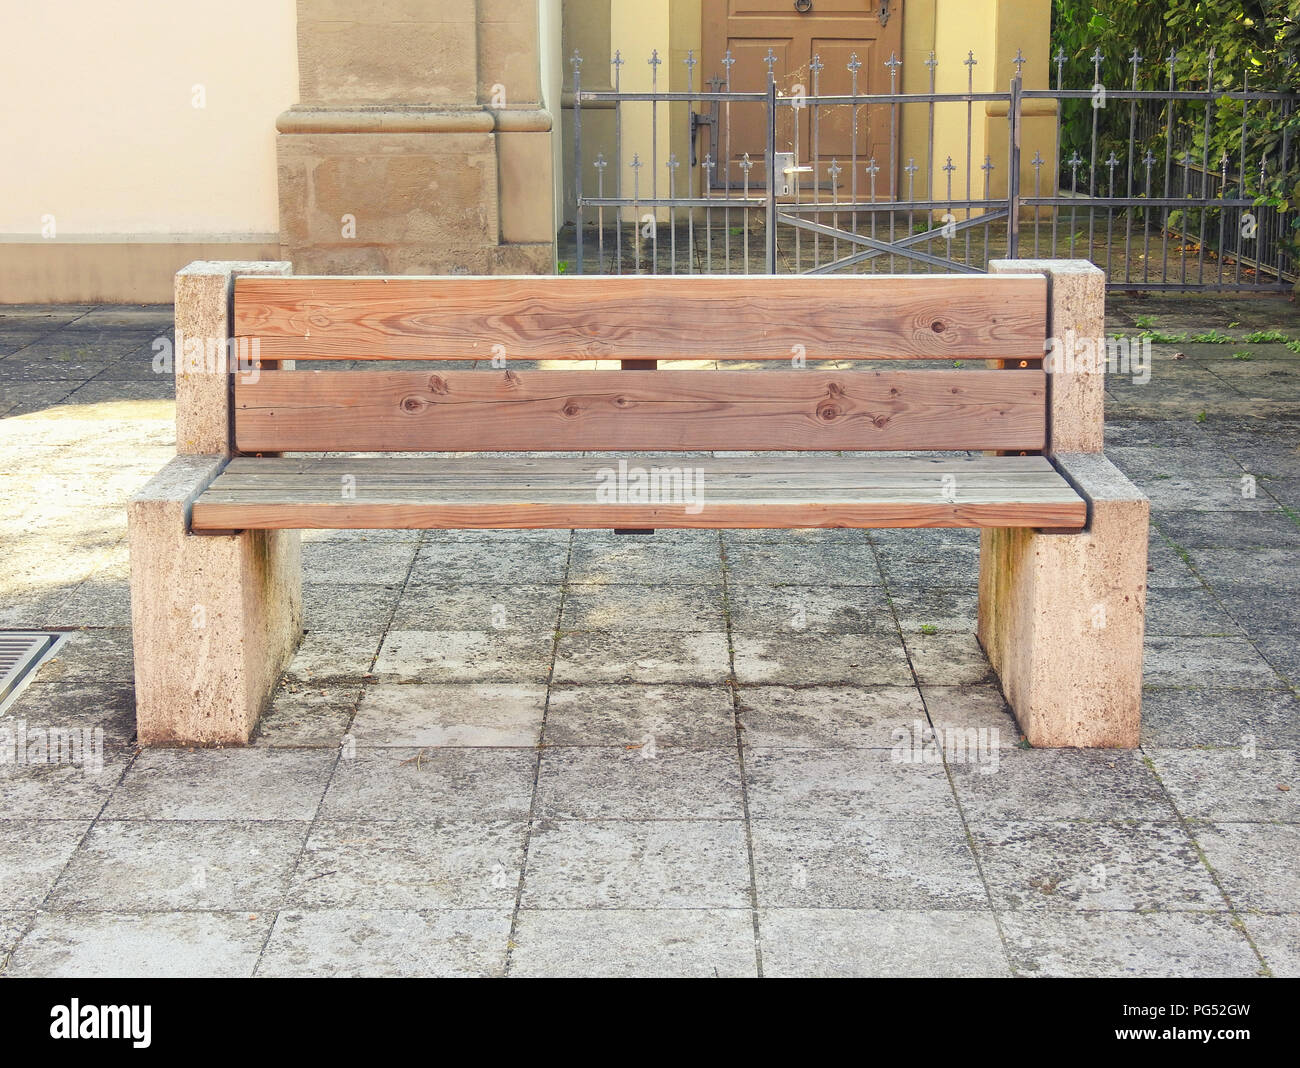 wooden bench in front